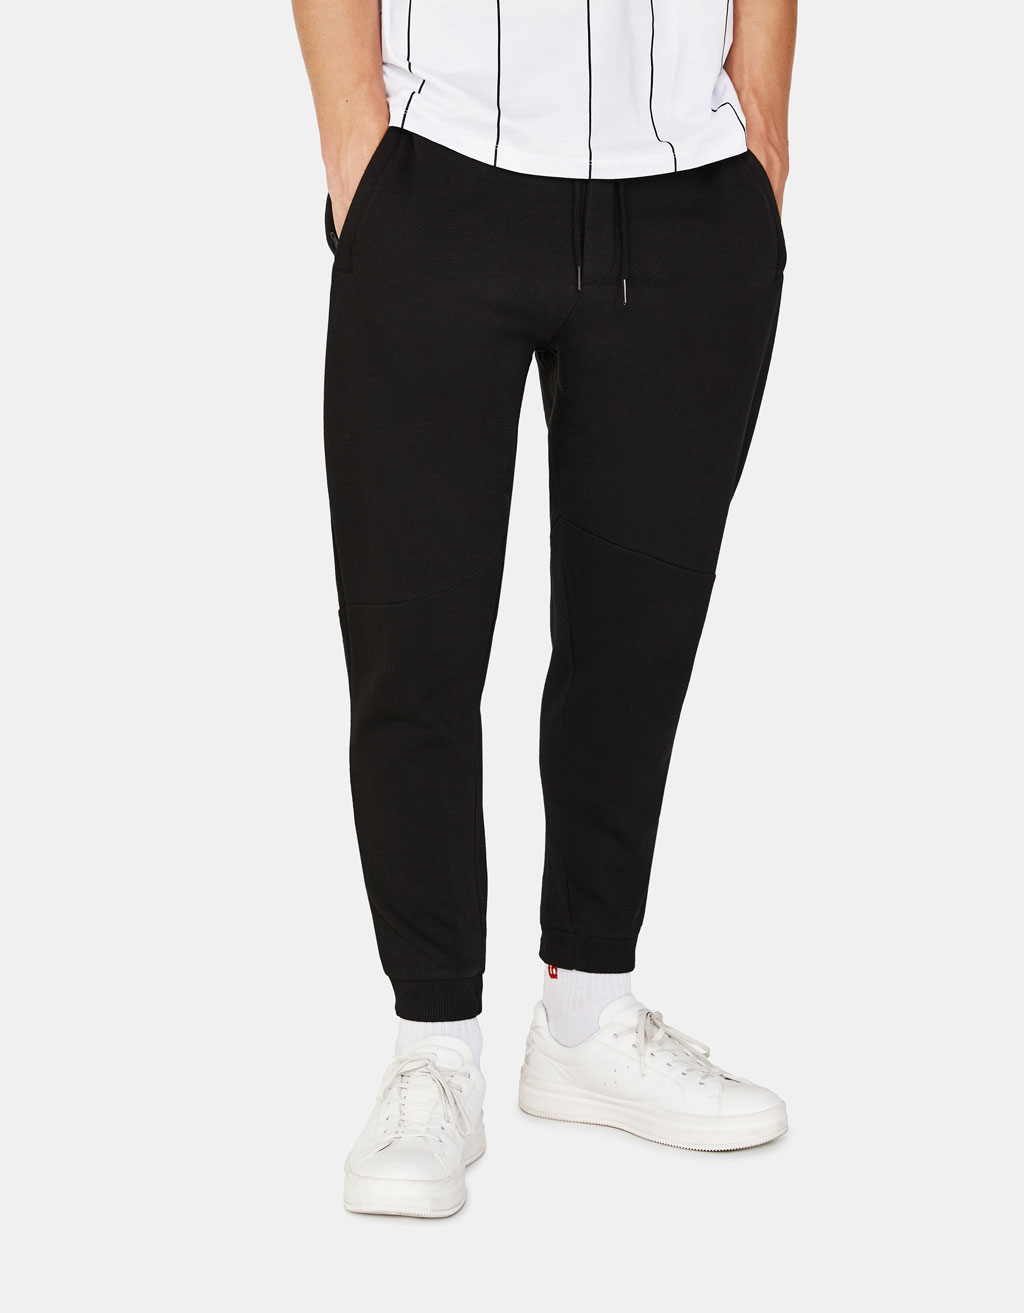 Join Life jogging trousers